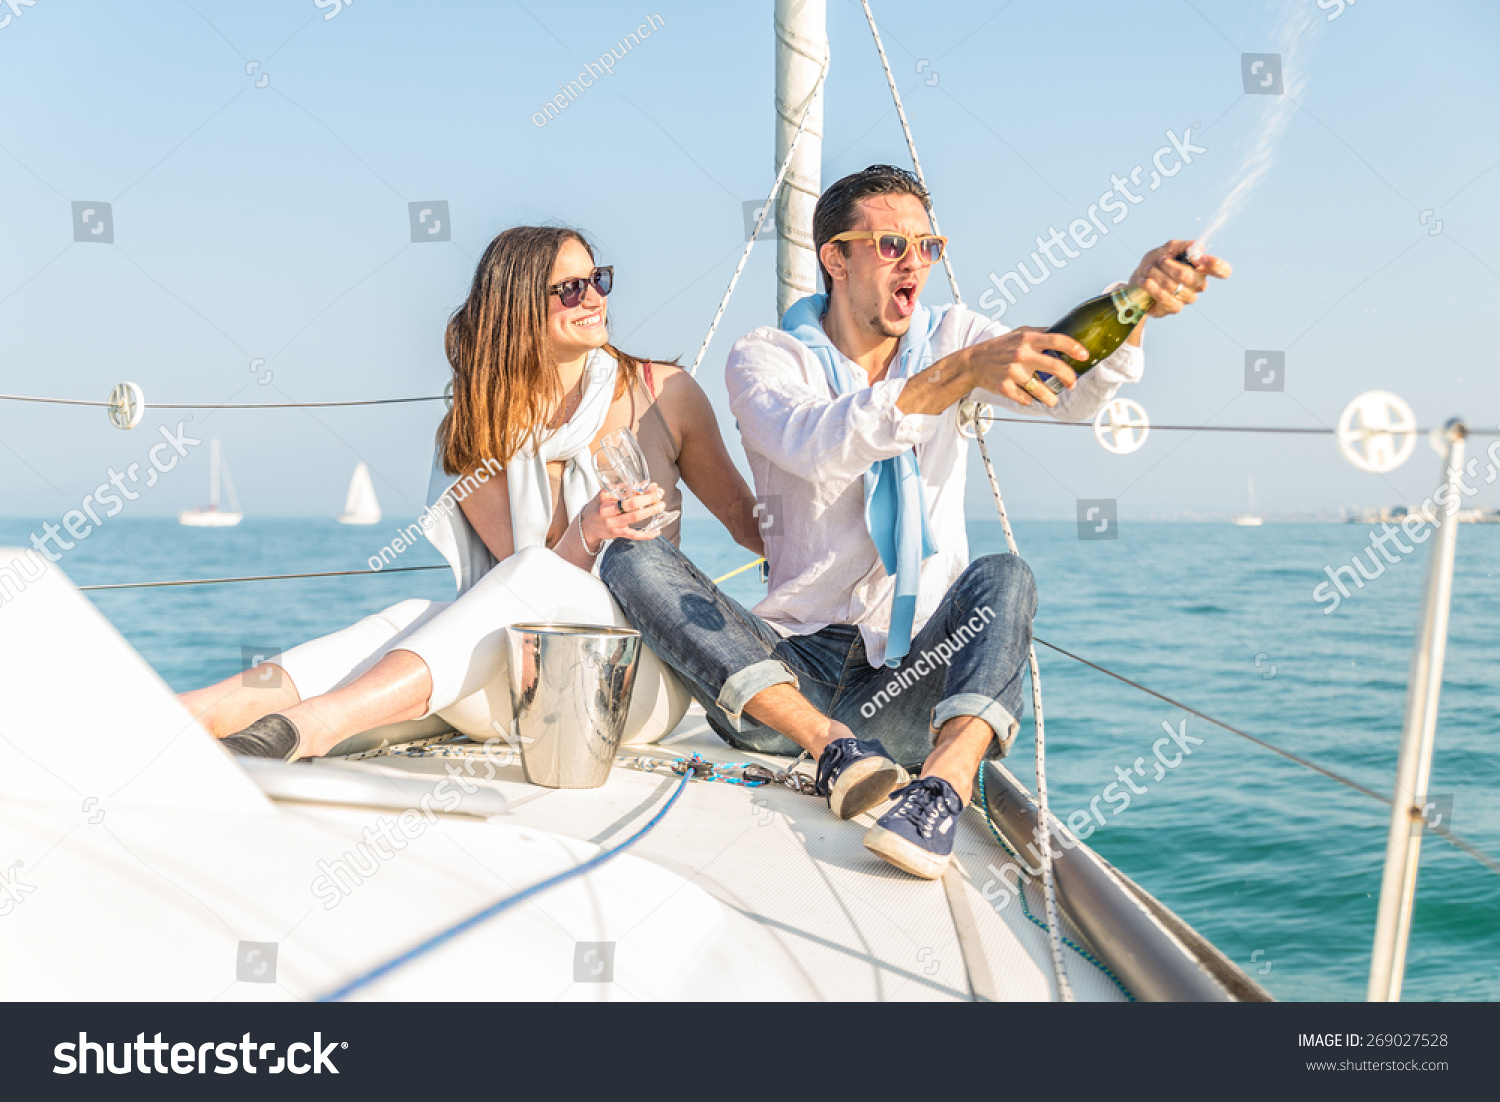 Couple celebrating with champagne on a boat Attractive man uncorking champagne and having party with girlfriend on vacation.Two young tourists having fun on boat tour in the summertime